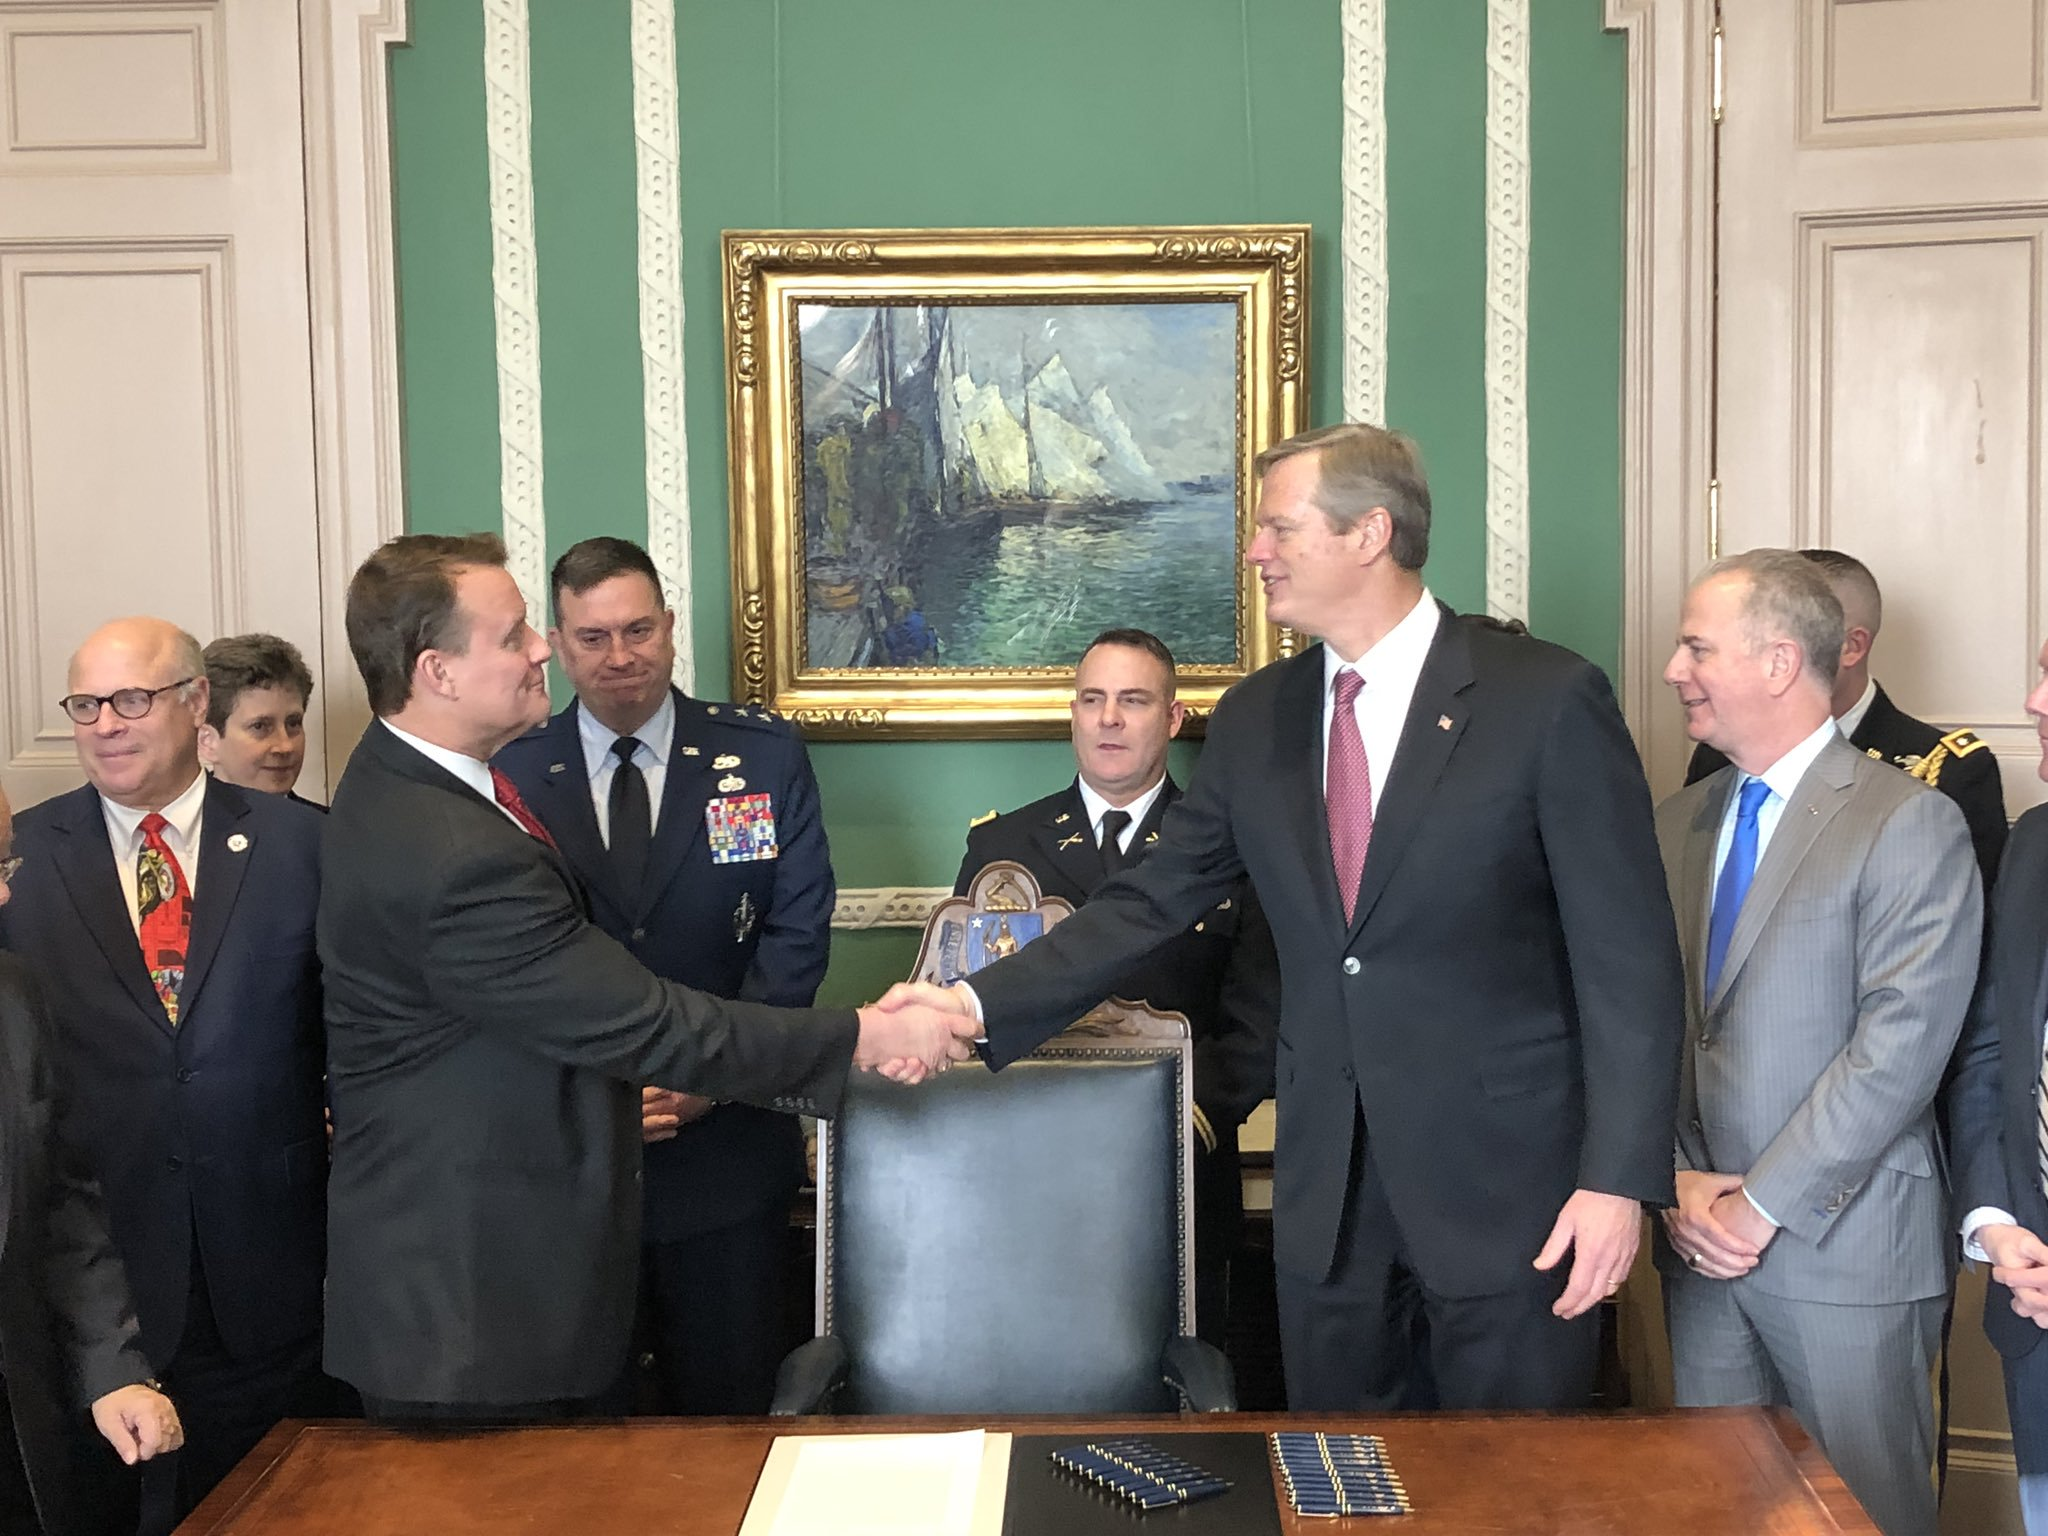 Pictured: Senator Michael Moore with Governor Charlie Baker, Major General Gary Keefe and legislative colleagues in the Governor's Office at the State House in Boston.